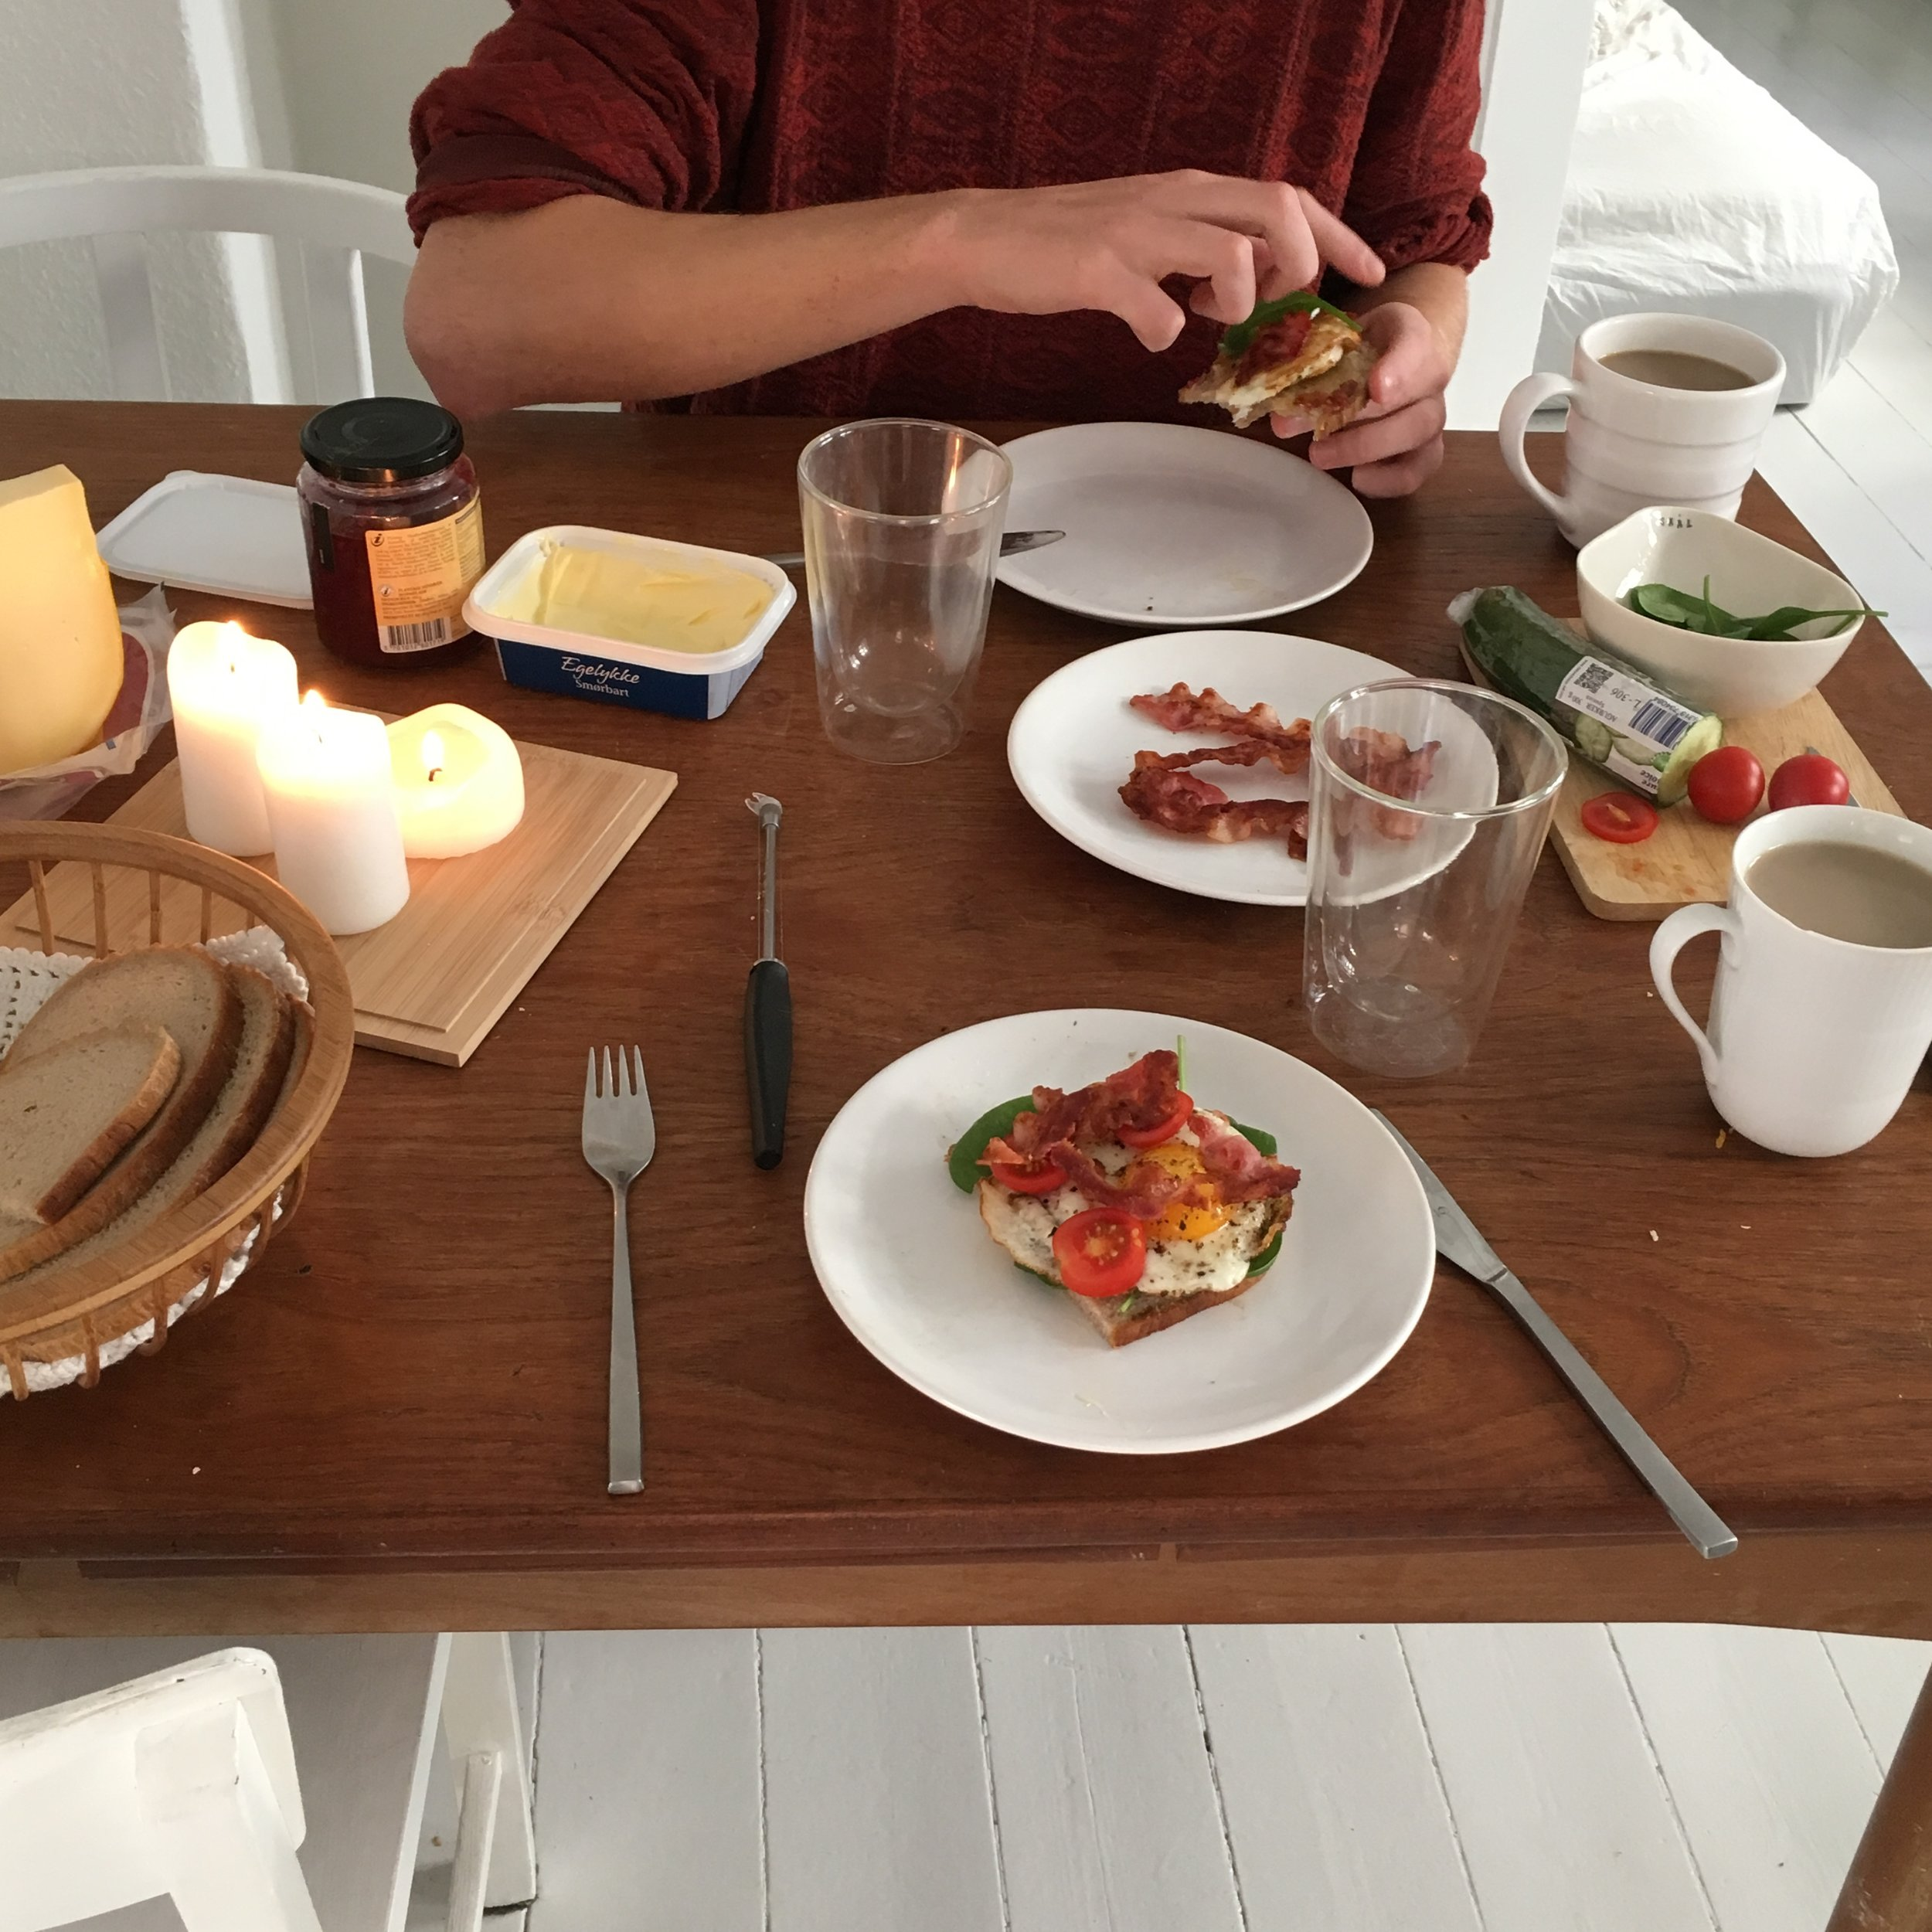 The first weekend where we didn't have a thing to do. We celebrated with a nice brunch and good music!